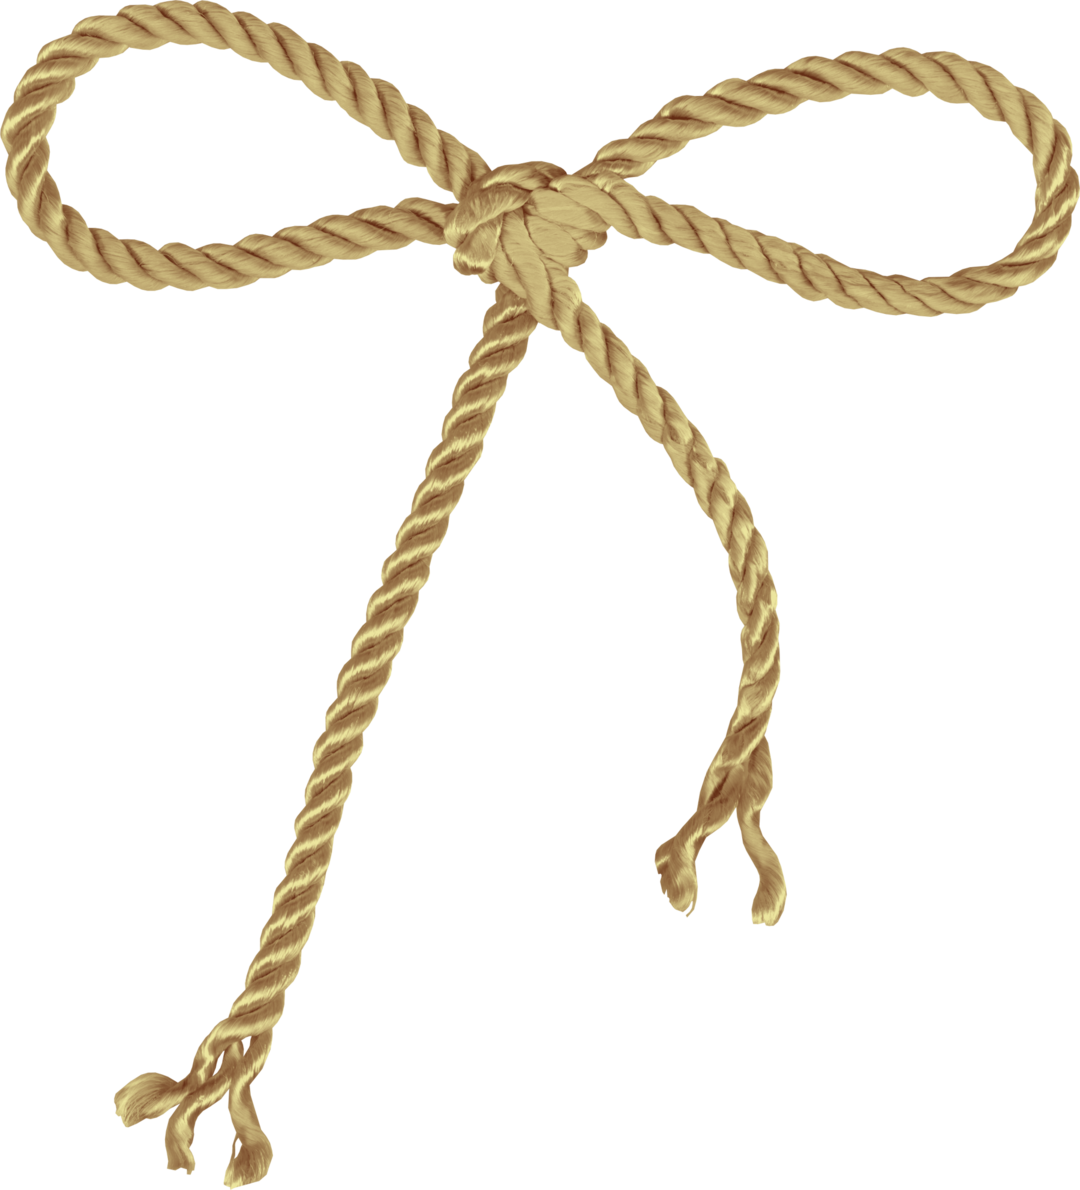 Rope Photos Picture image #45154